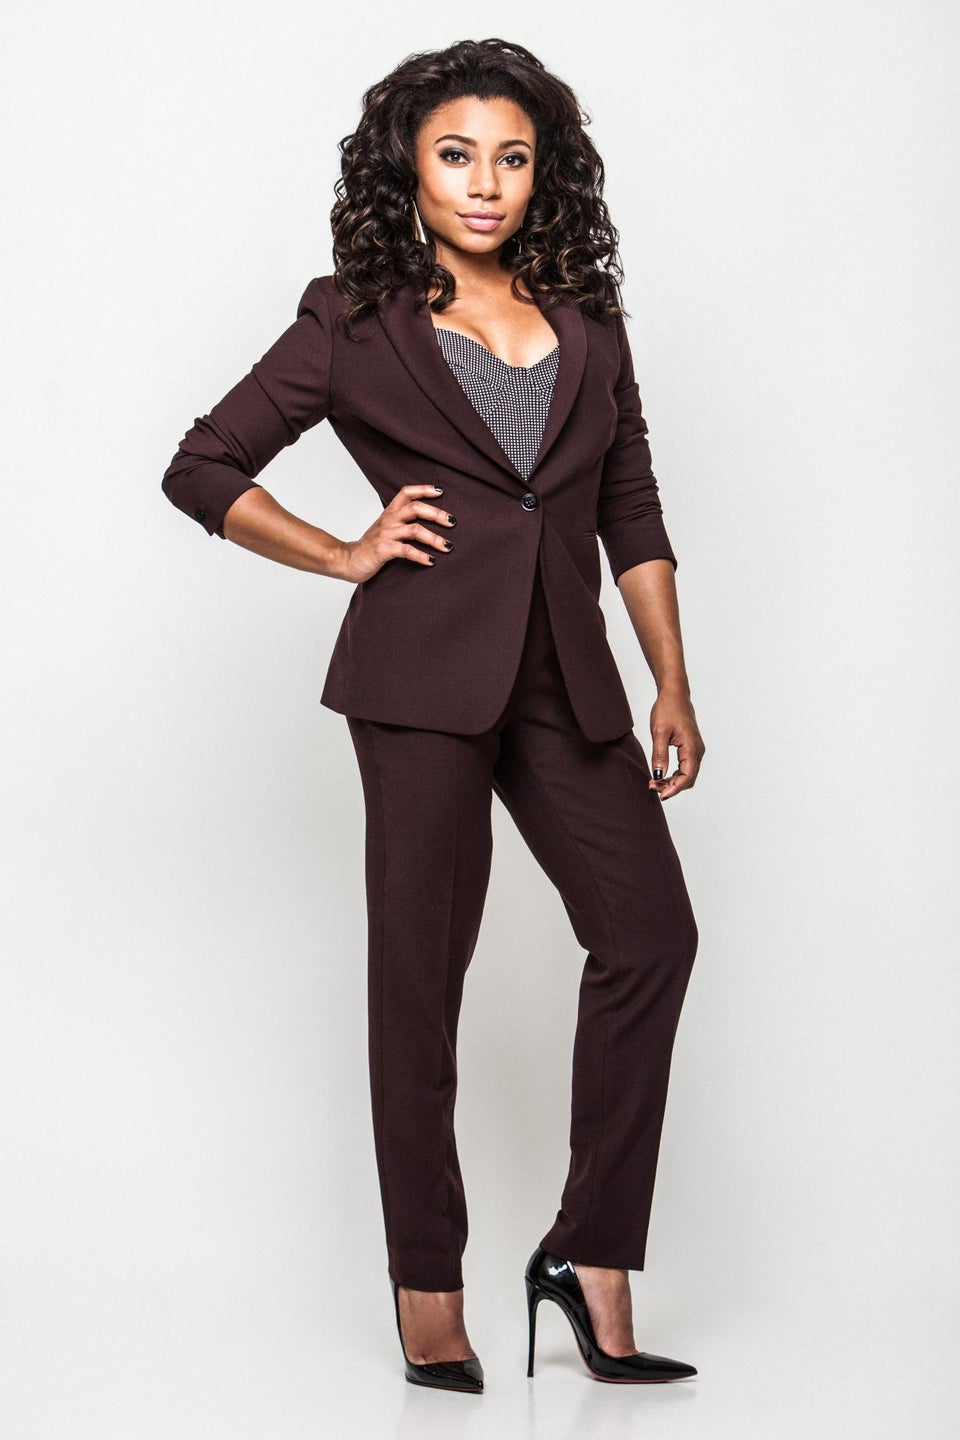 7 Things to Know About 'NCIS: New Orleans' Star Shalita Grant